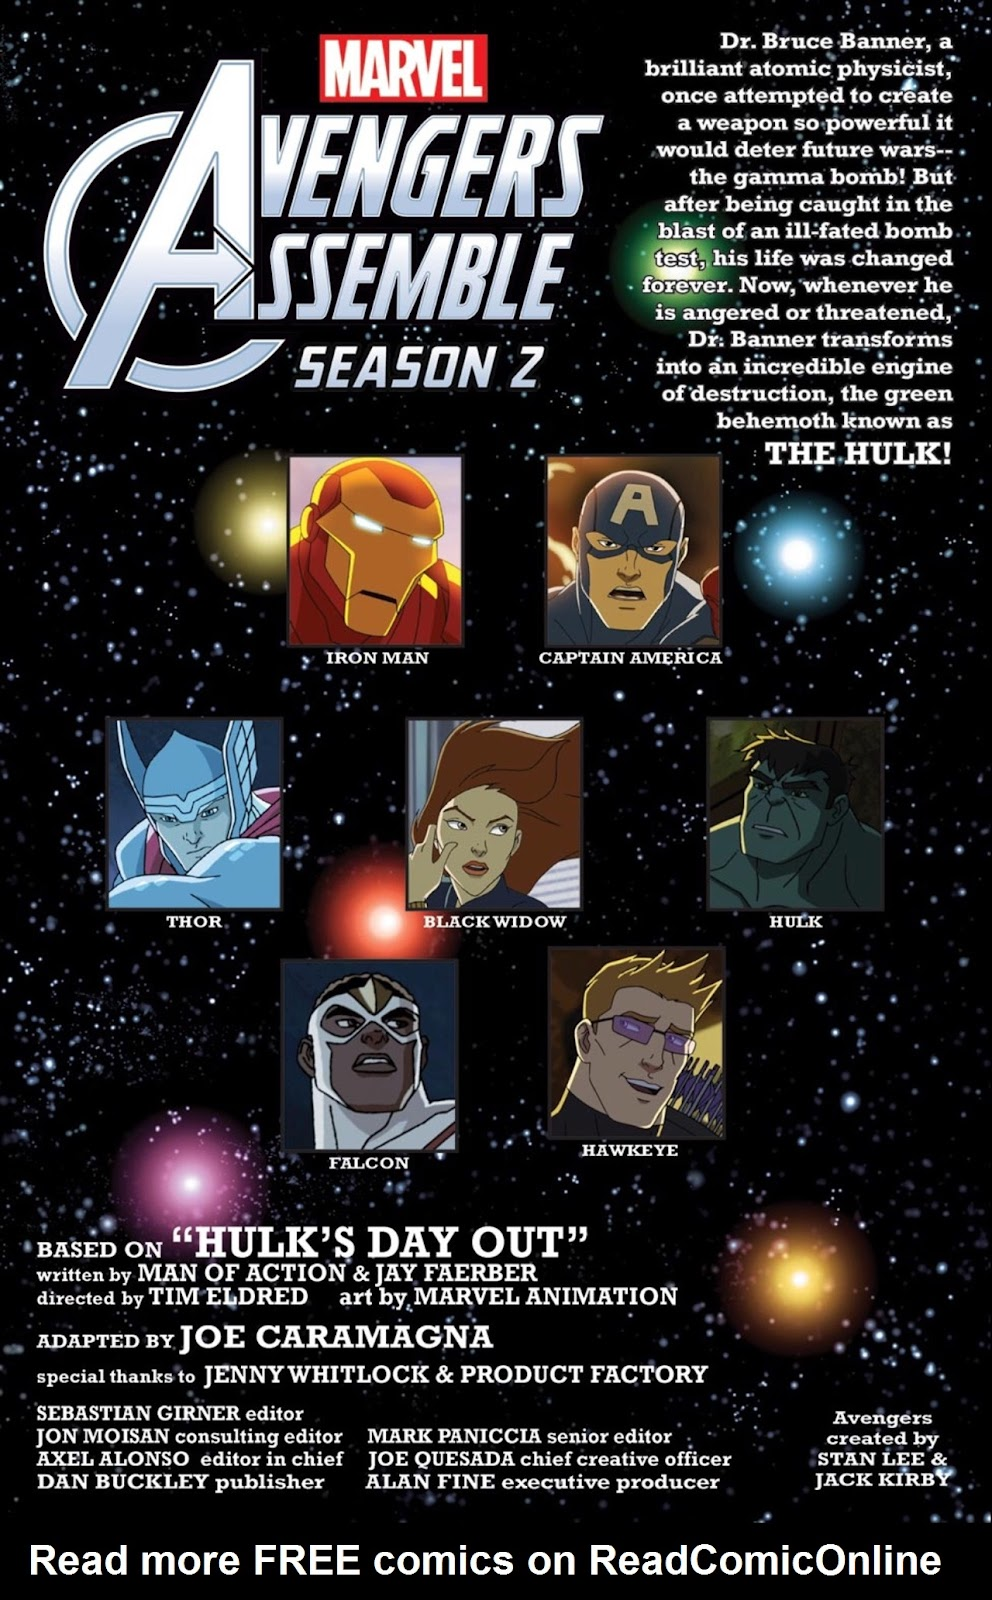 Read online Marvel Universe Avengers Assemble Season 2 comic -  Issue #3 - 4